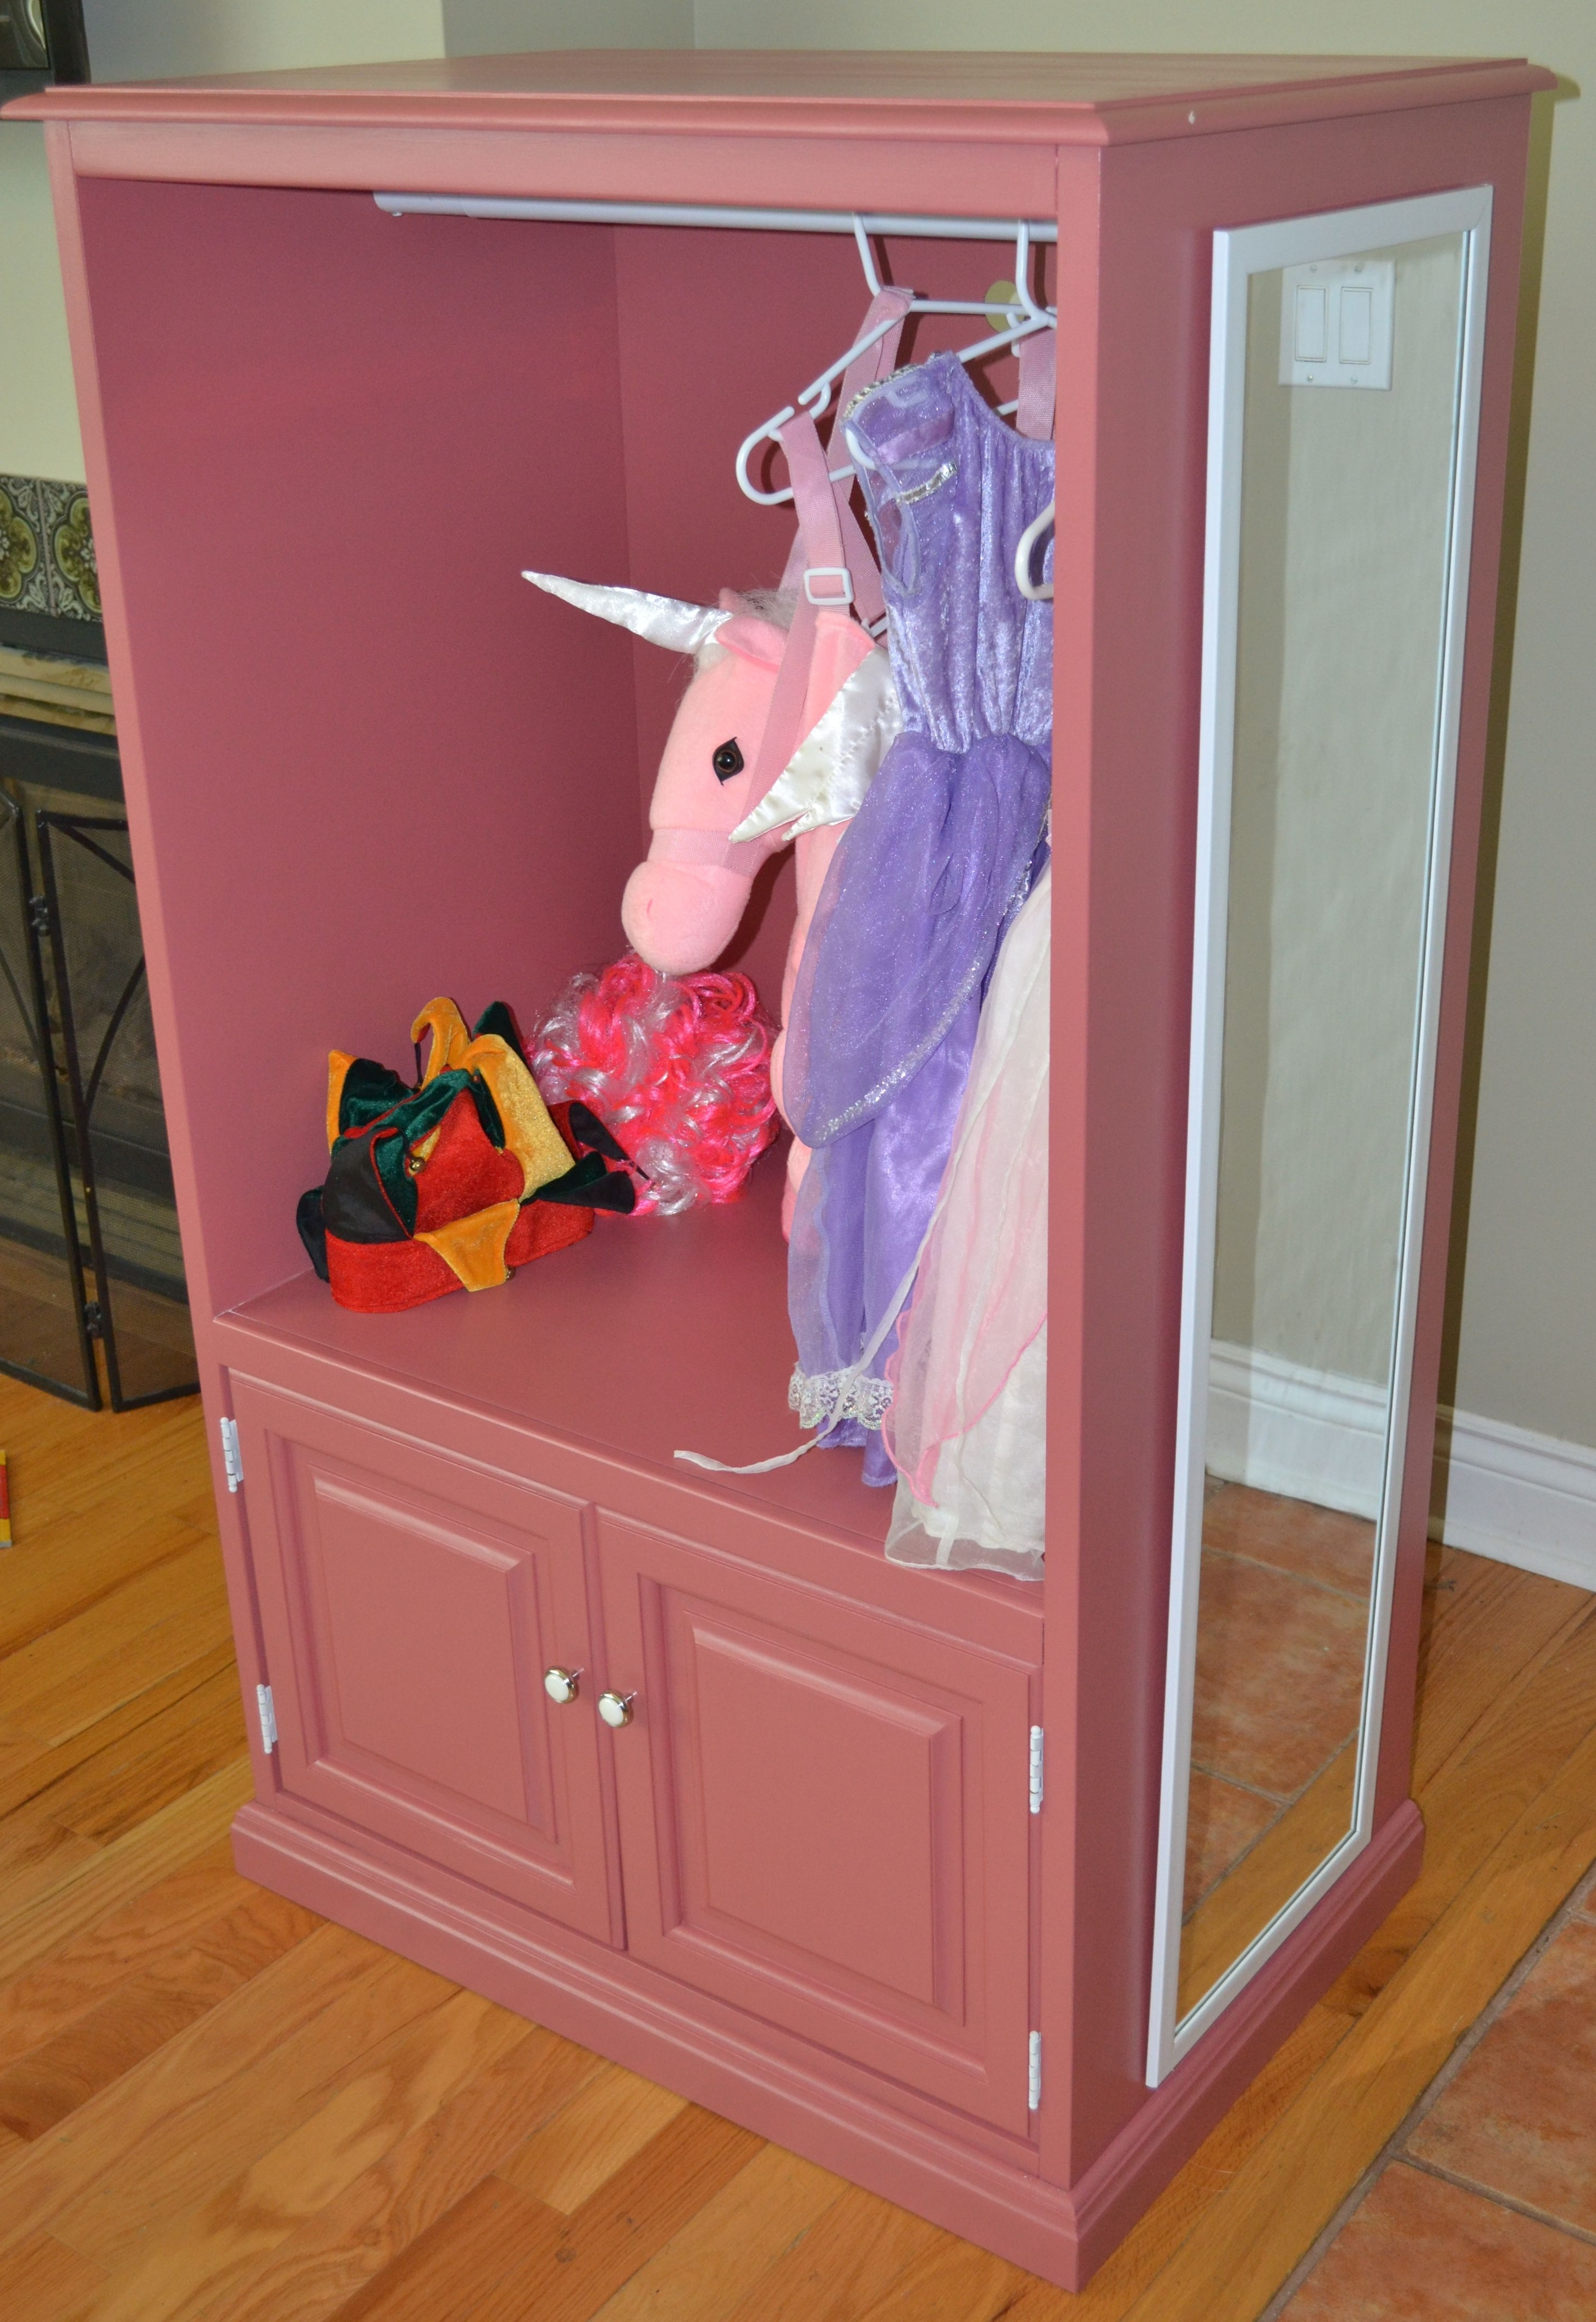 Widely Used Kids Dress Up Wardrobes Closet With Saw This On Hgtv And Loved It! Cute Wardrobe For A Little Girls (View 15 of 15)